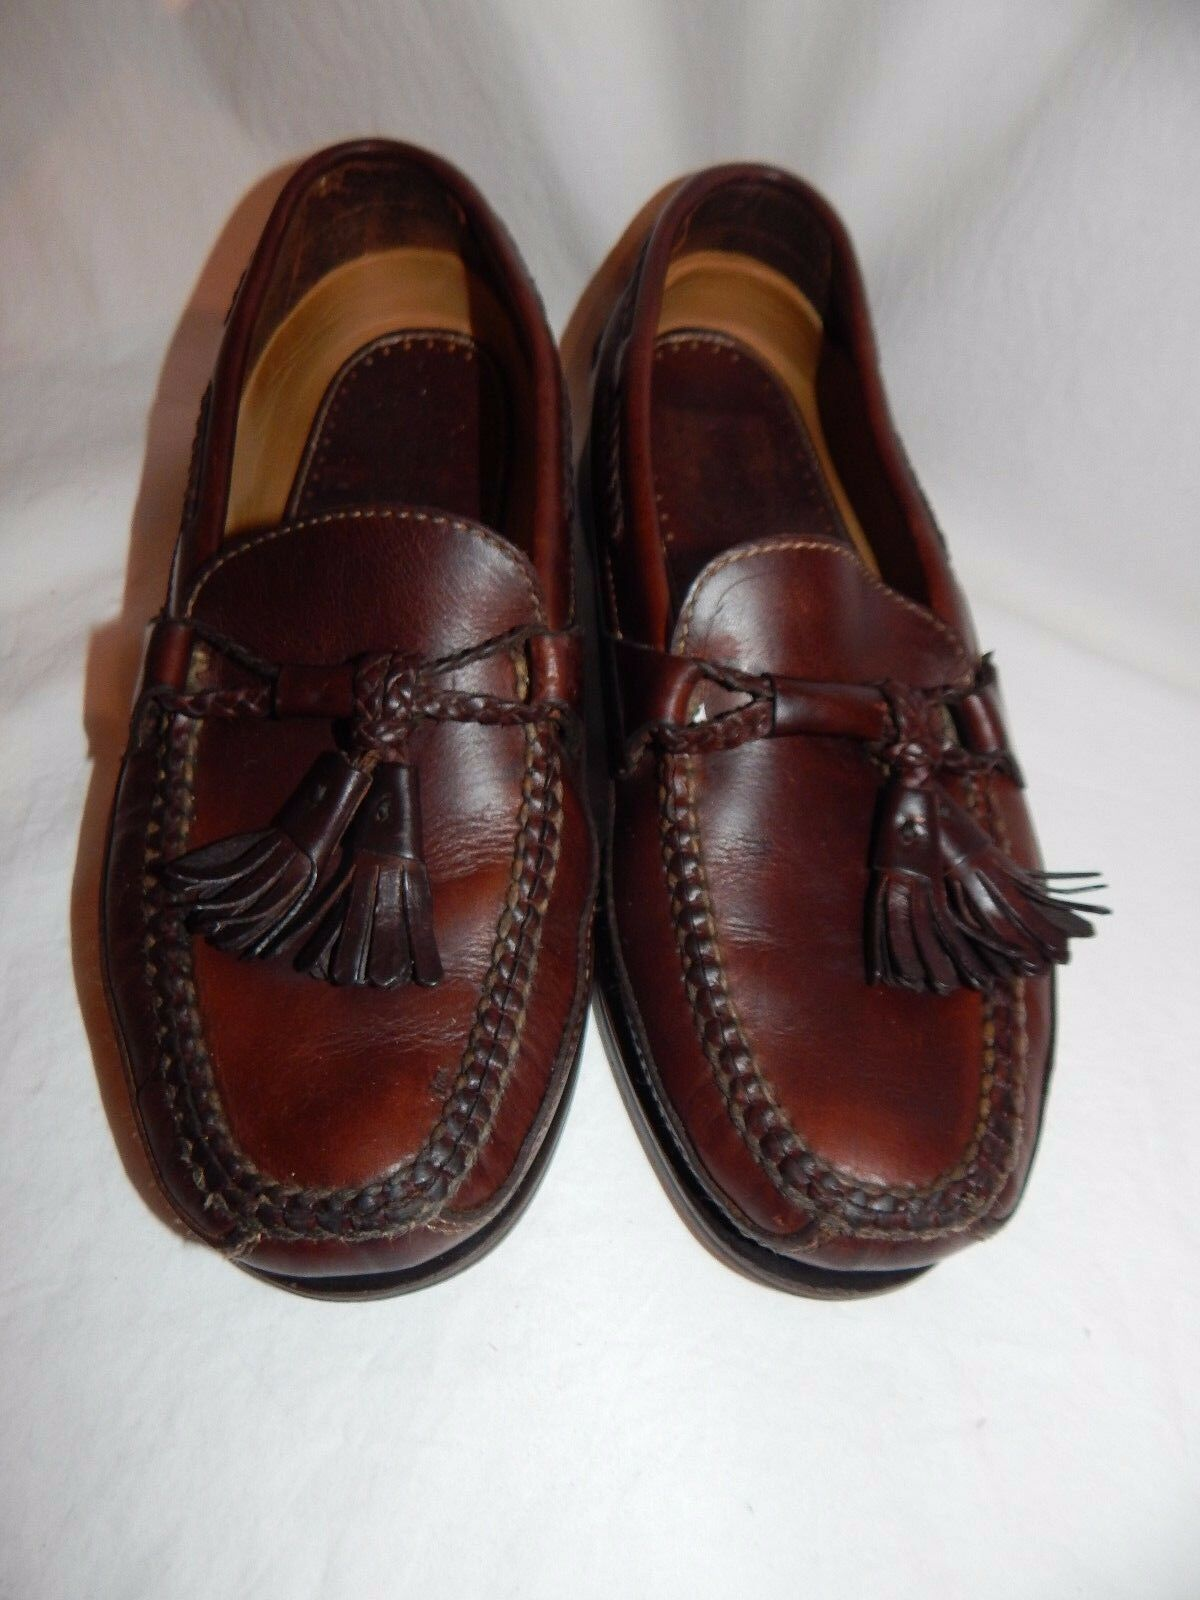 Johnston & Murphy Passport Brown Leather Slip-On Loafers Size 8 D Causal shoes